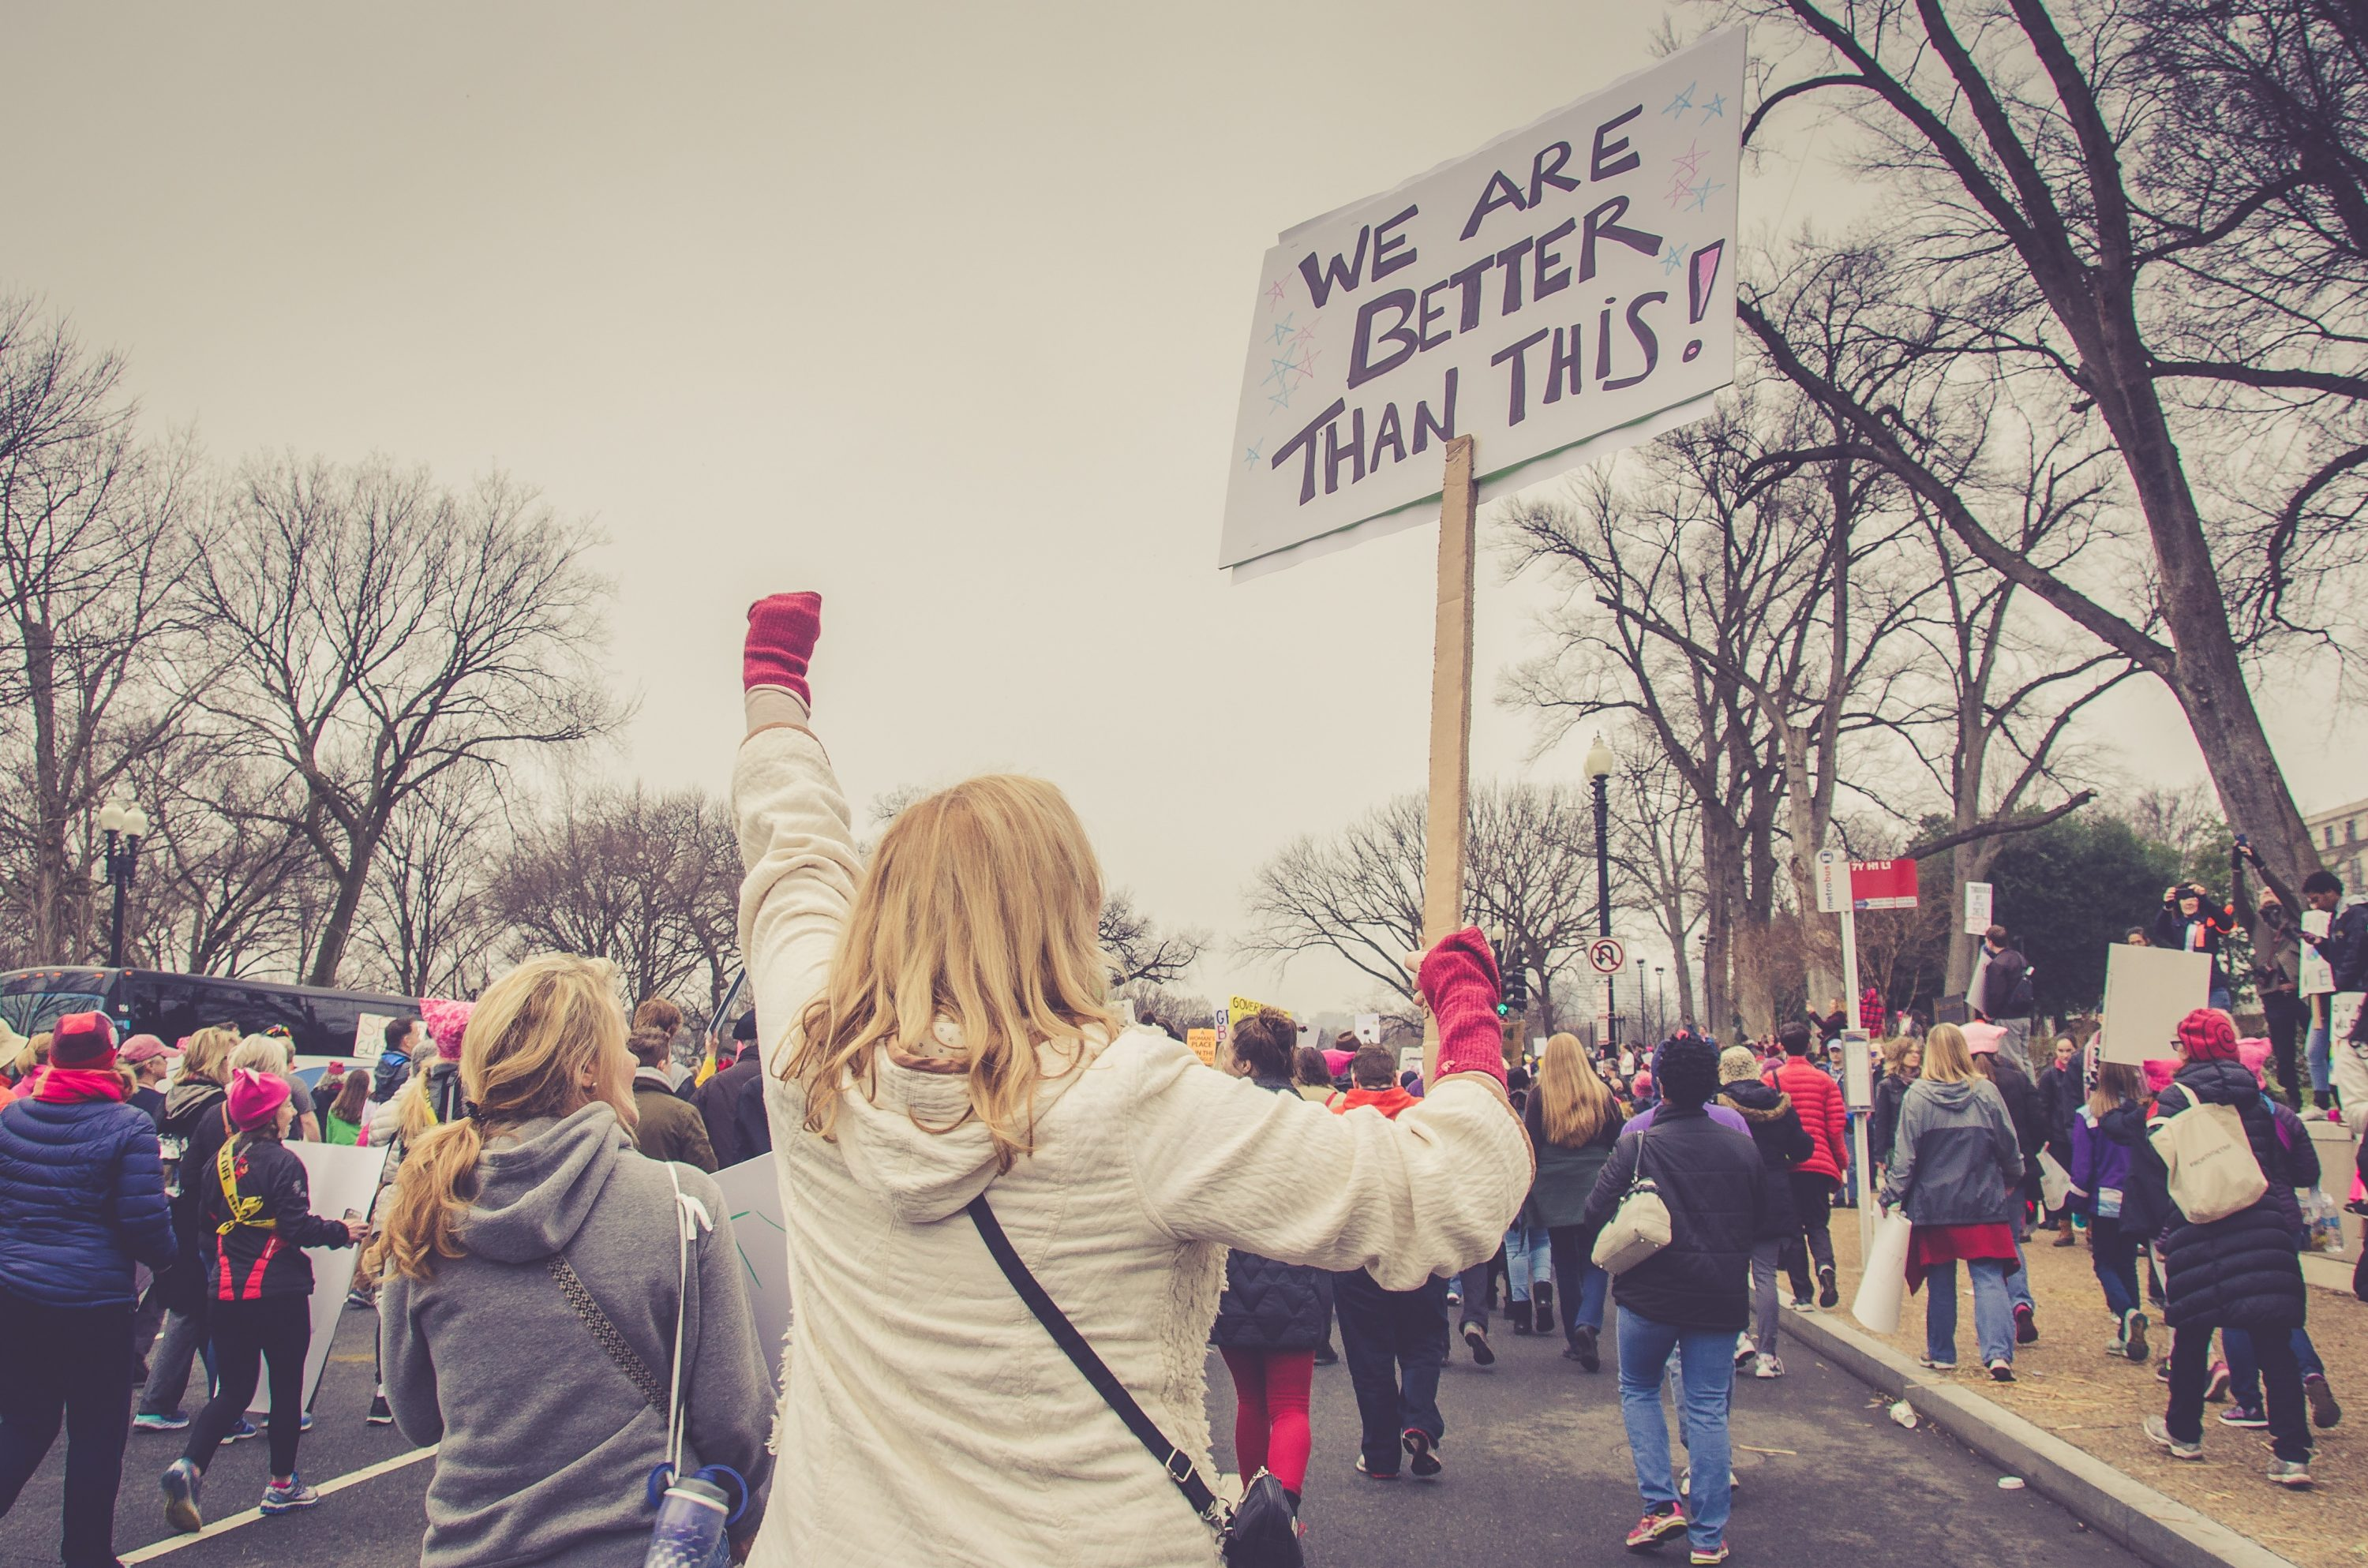 A photo of a protester by Jerry Kiesewetter on Unsplash